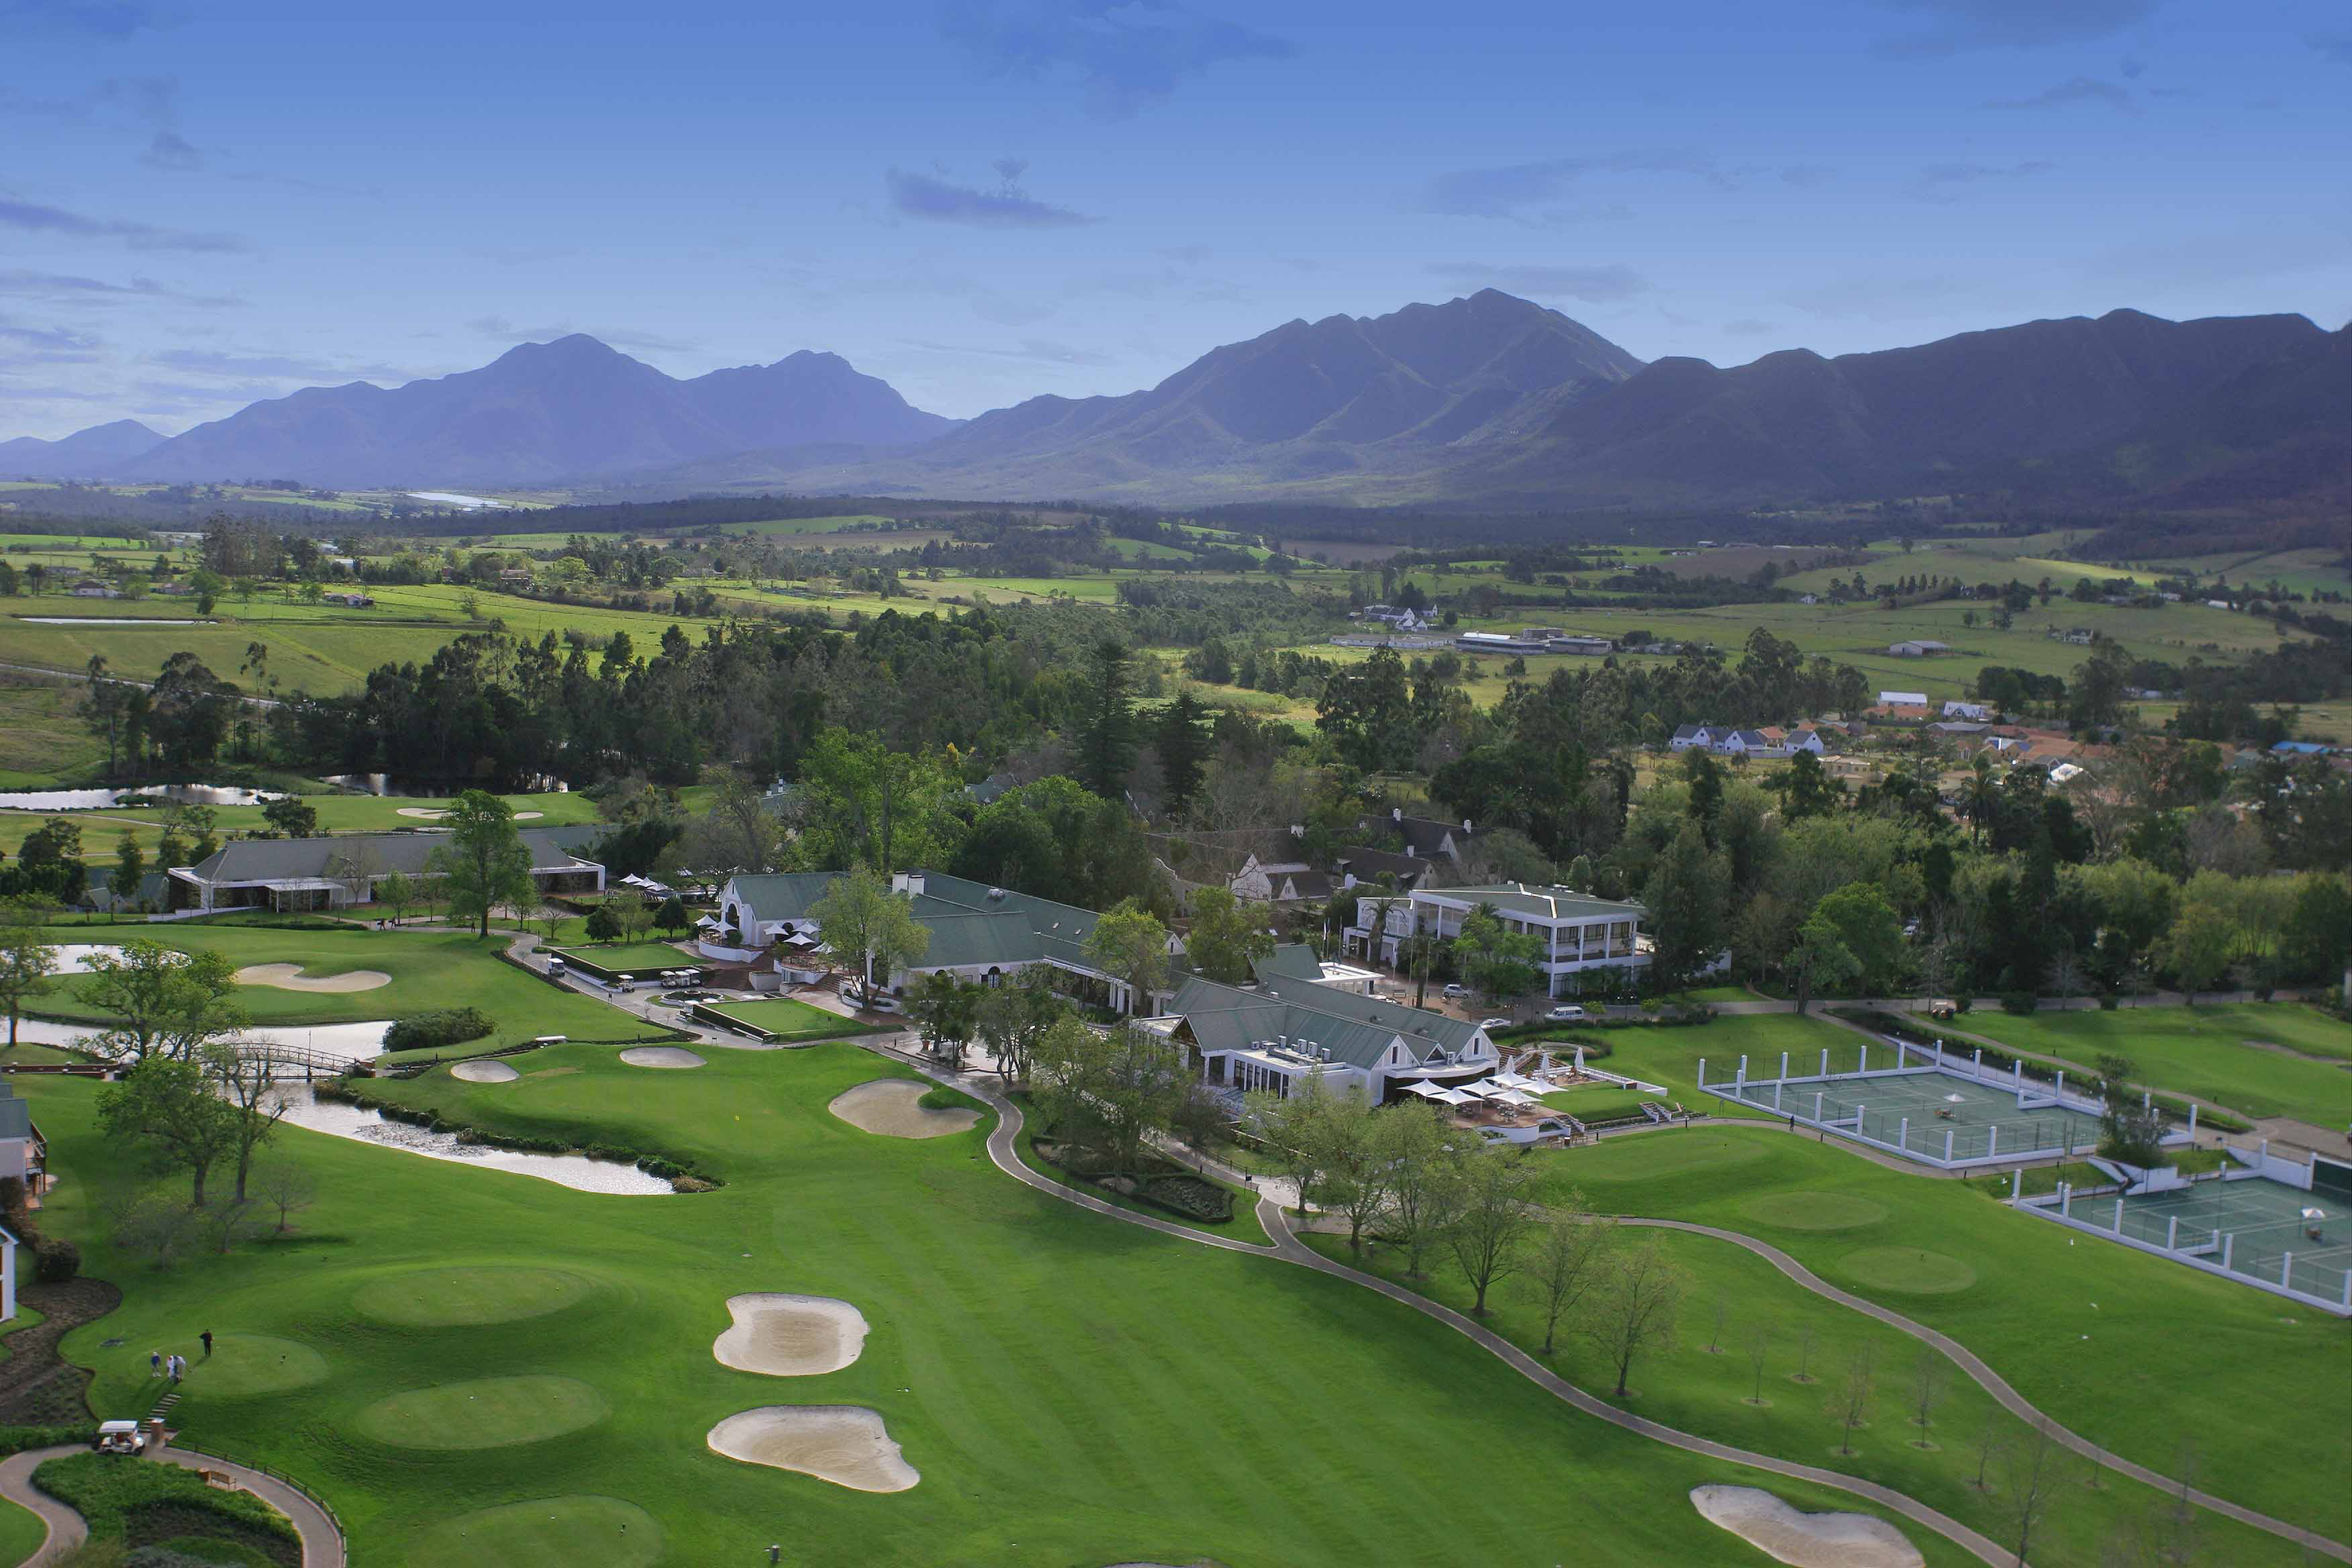 Fancourt Hotel from the air